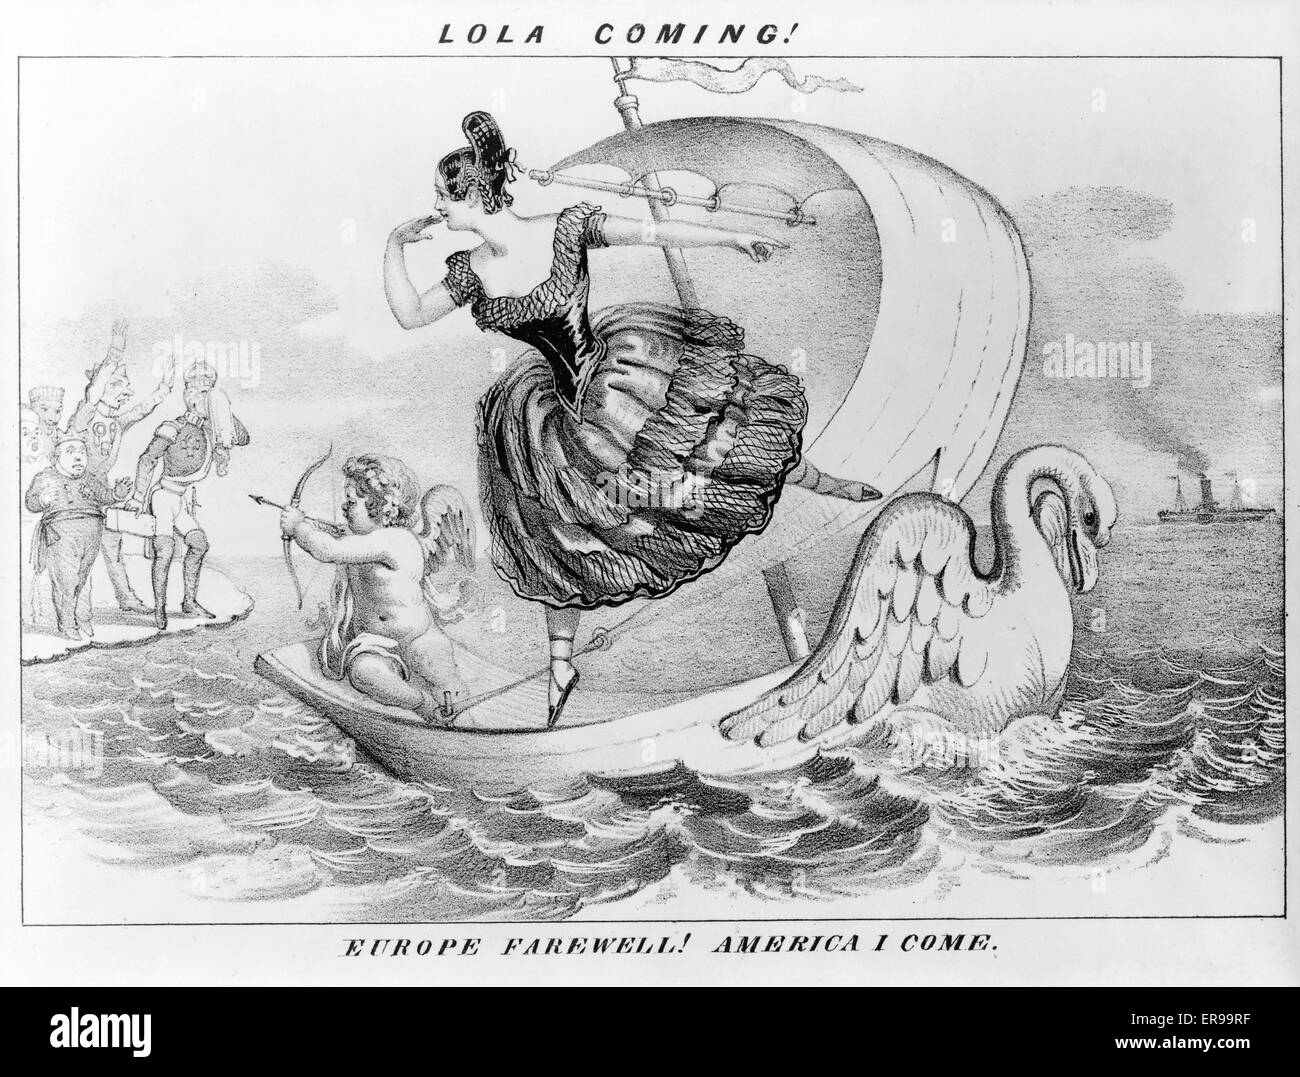 Lola coming! Europe farewell! America I come. Caricature of theater scene, showing Lola Montez and Cupid on swan - Stock Image